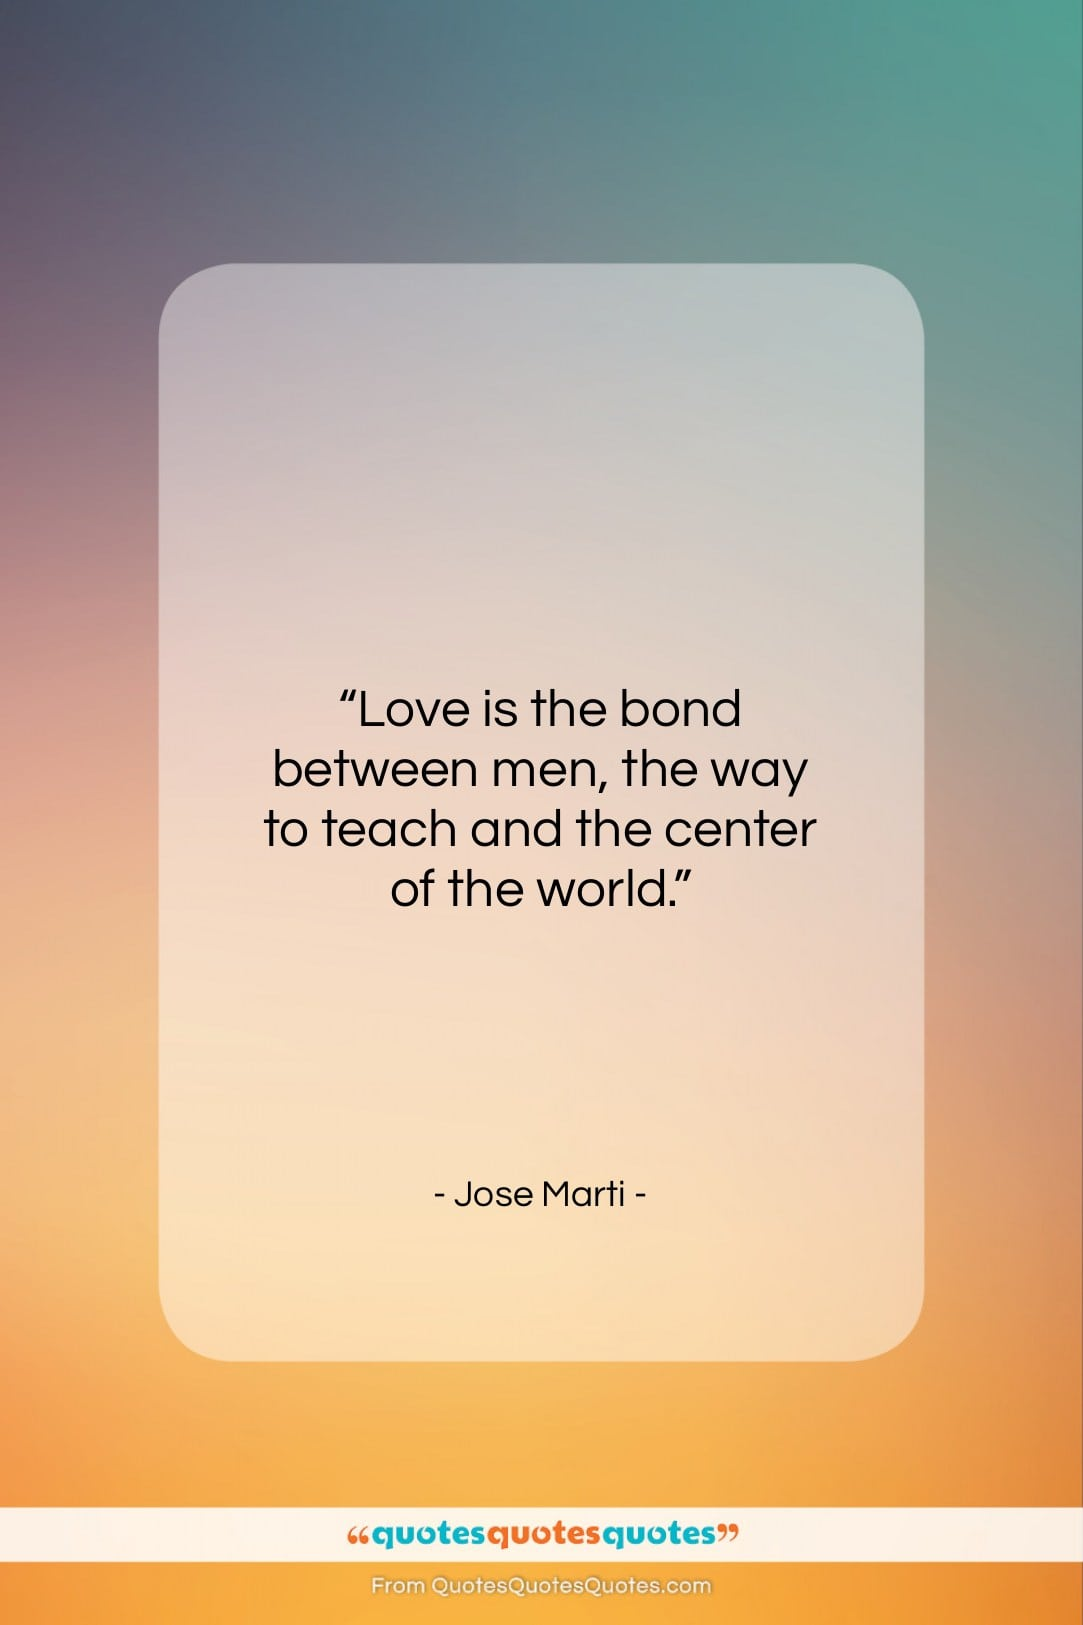 """Jose Marti quote: """"Love is the bond between men, the…""""- at QuotesQuotesQuotes.com"""